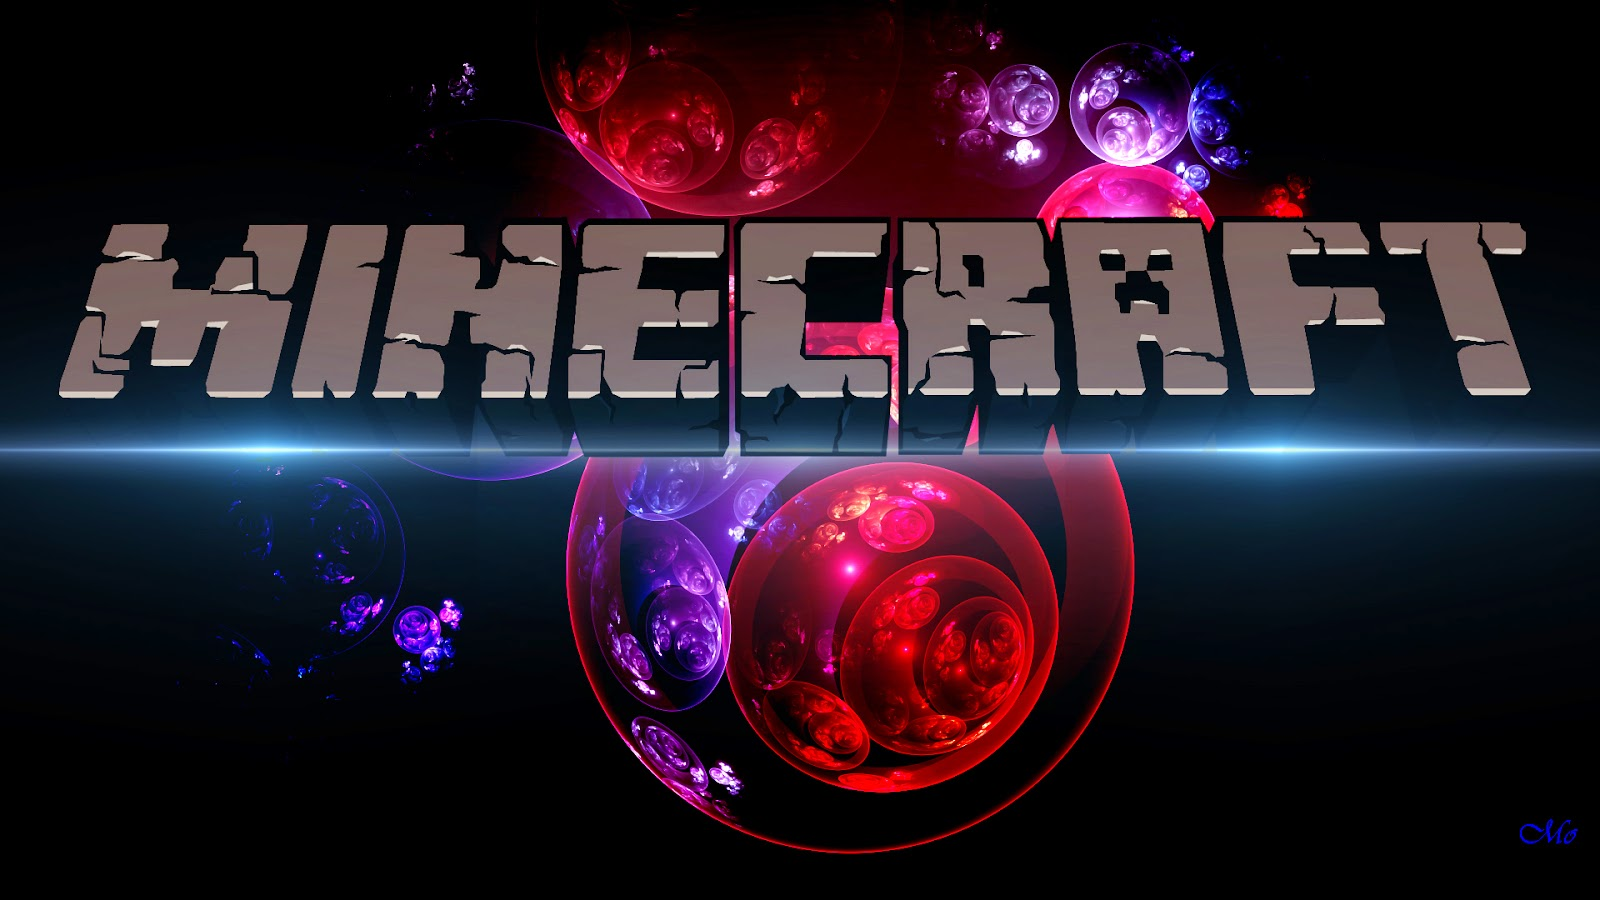 Come Here Everytime You Want To Change Your Desktop Wallpaper Because Can Find Not Only Minecraft Wallpapers Collection But Also More Cool Free